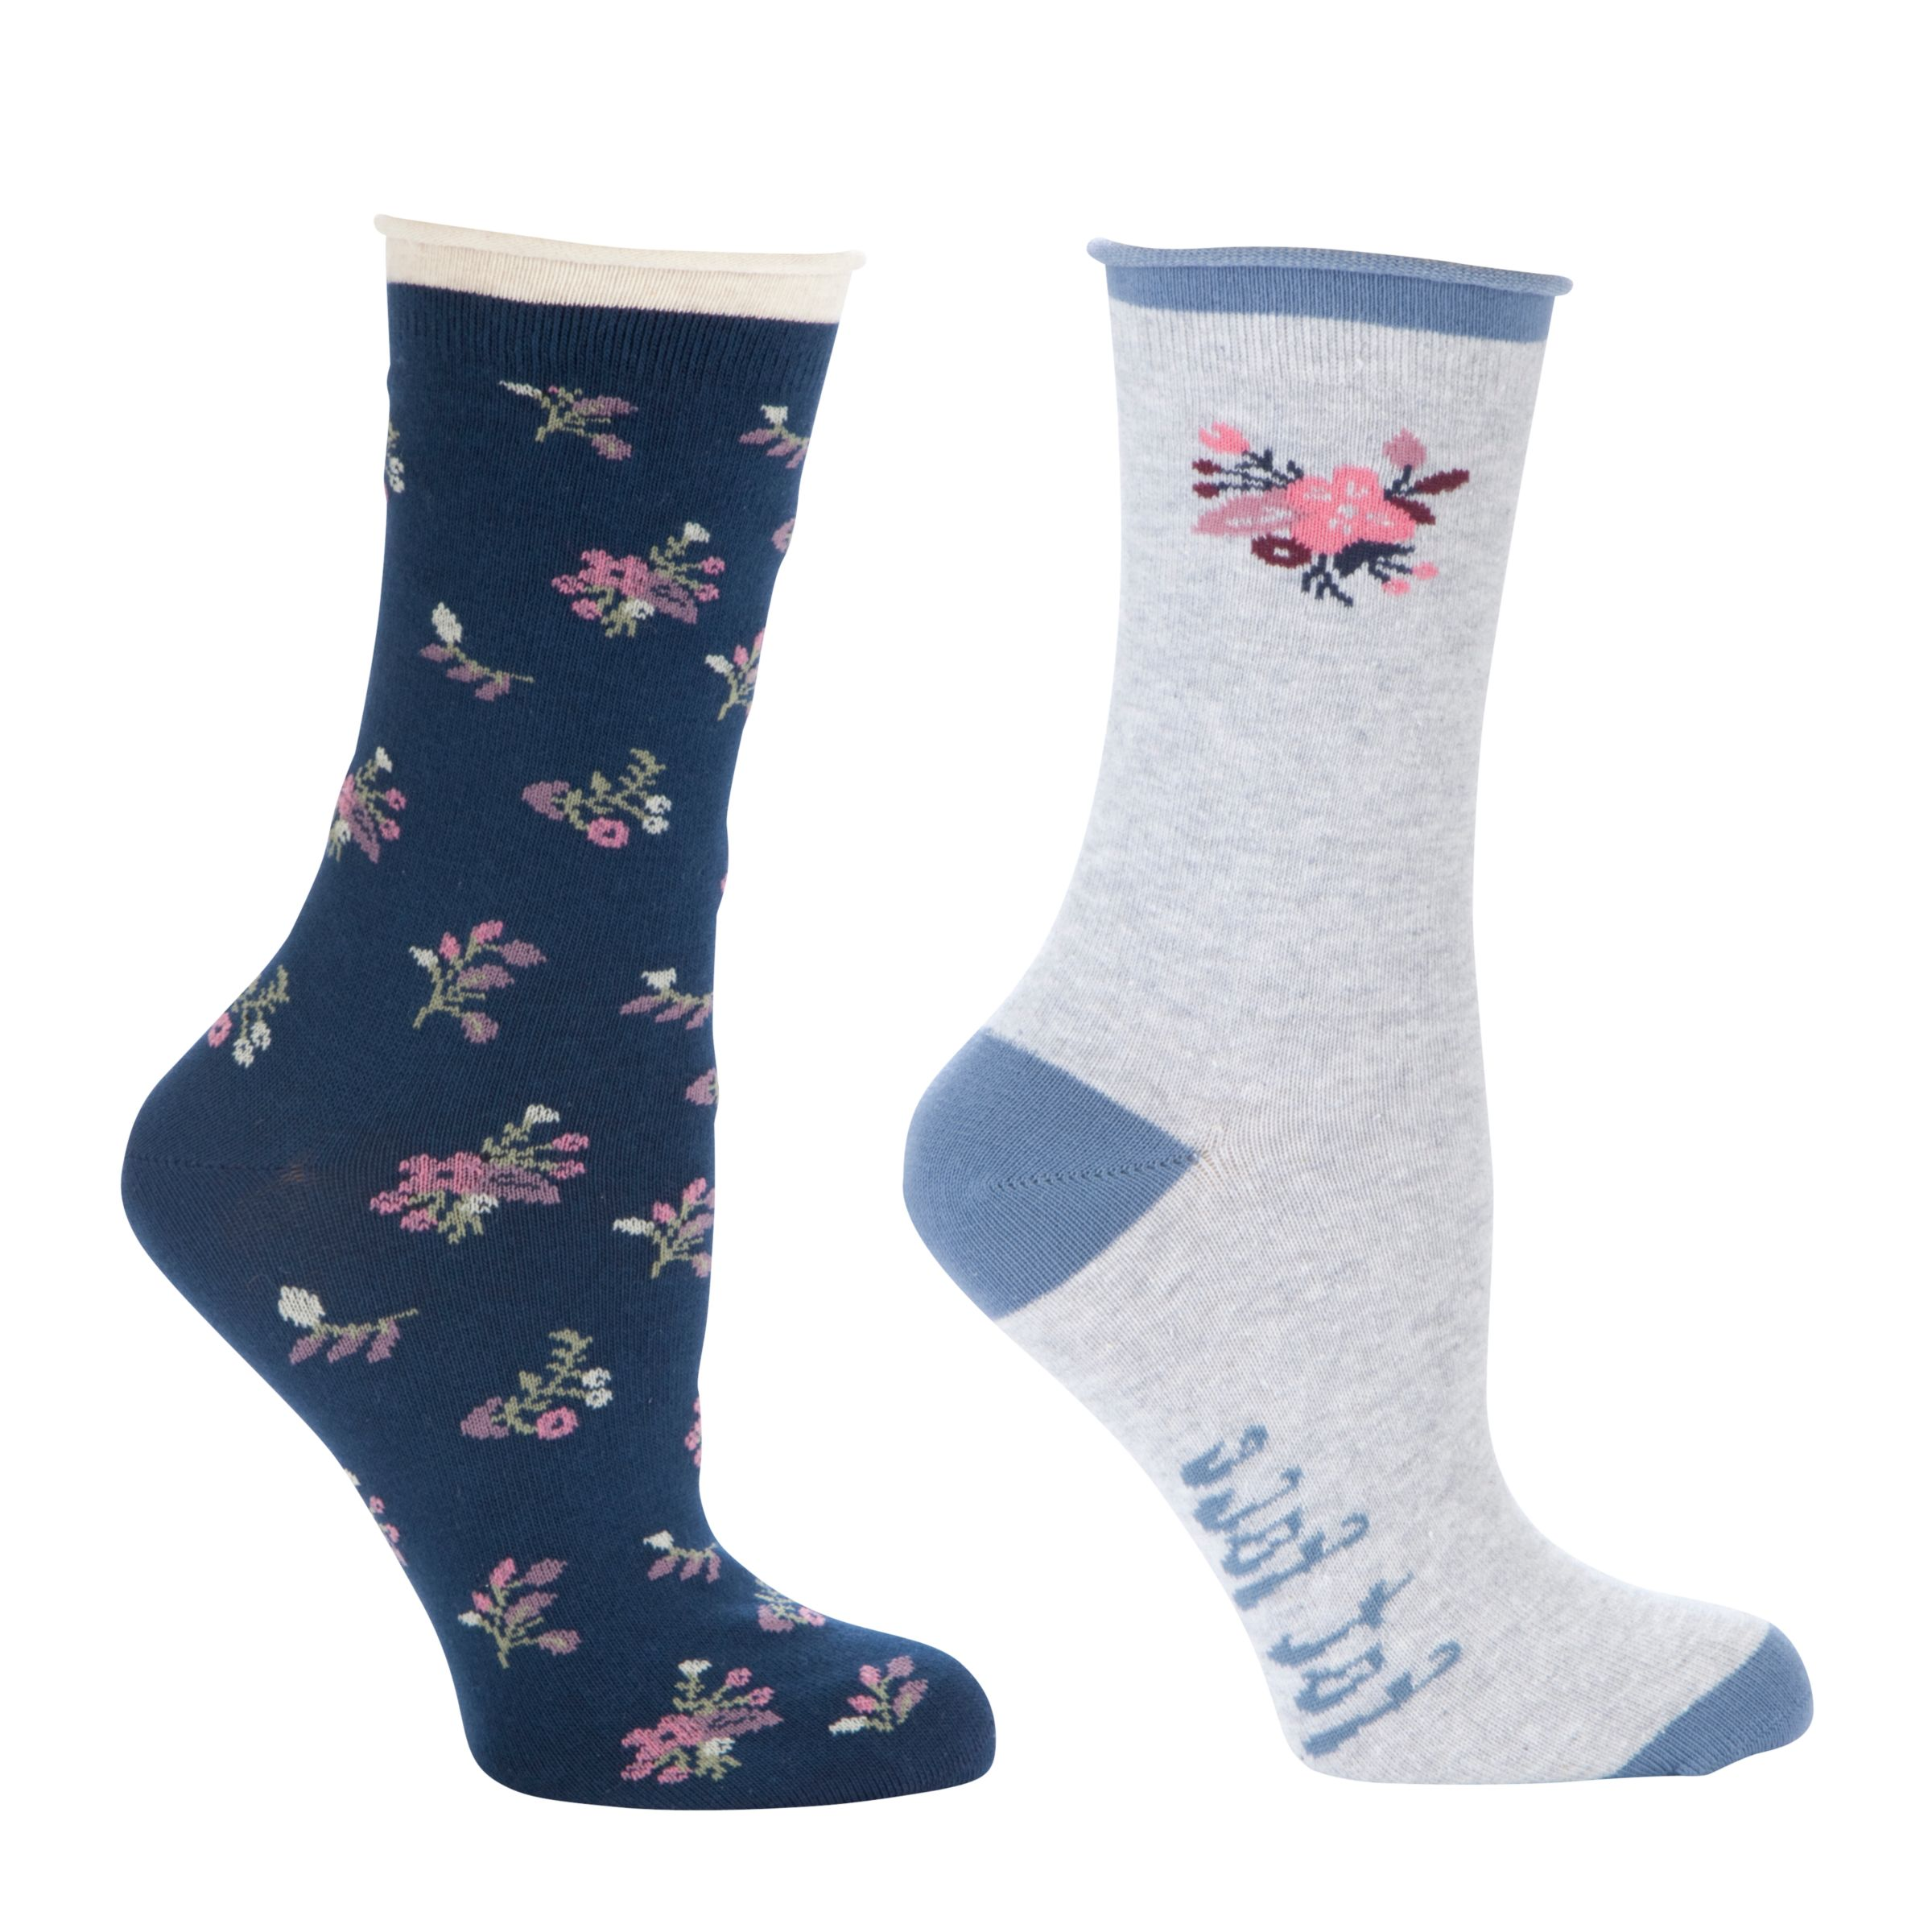 Fat Face Floral Ditsy Ankle Socks, Pack of 2, Navy